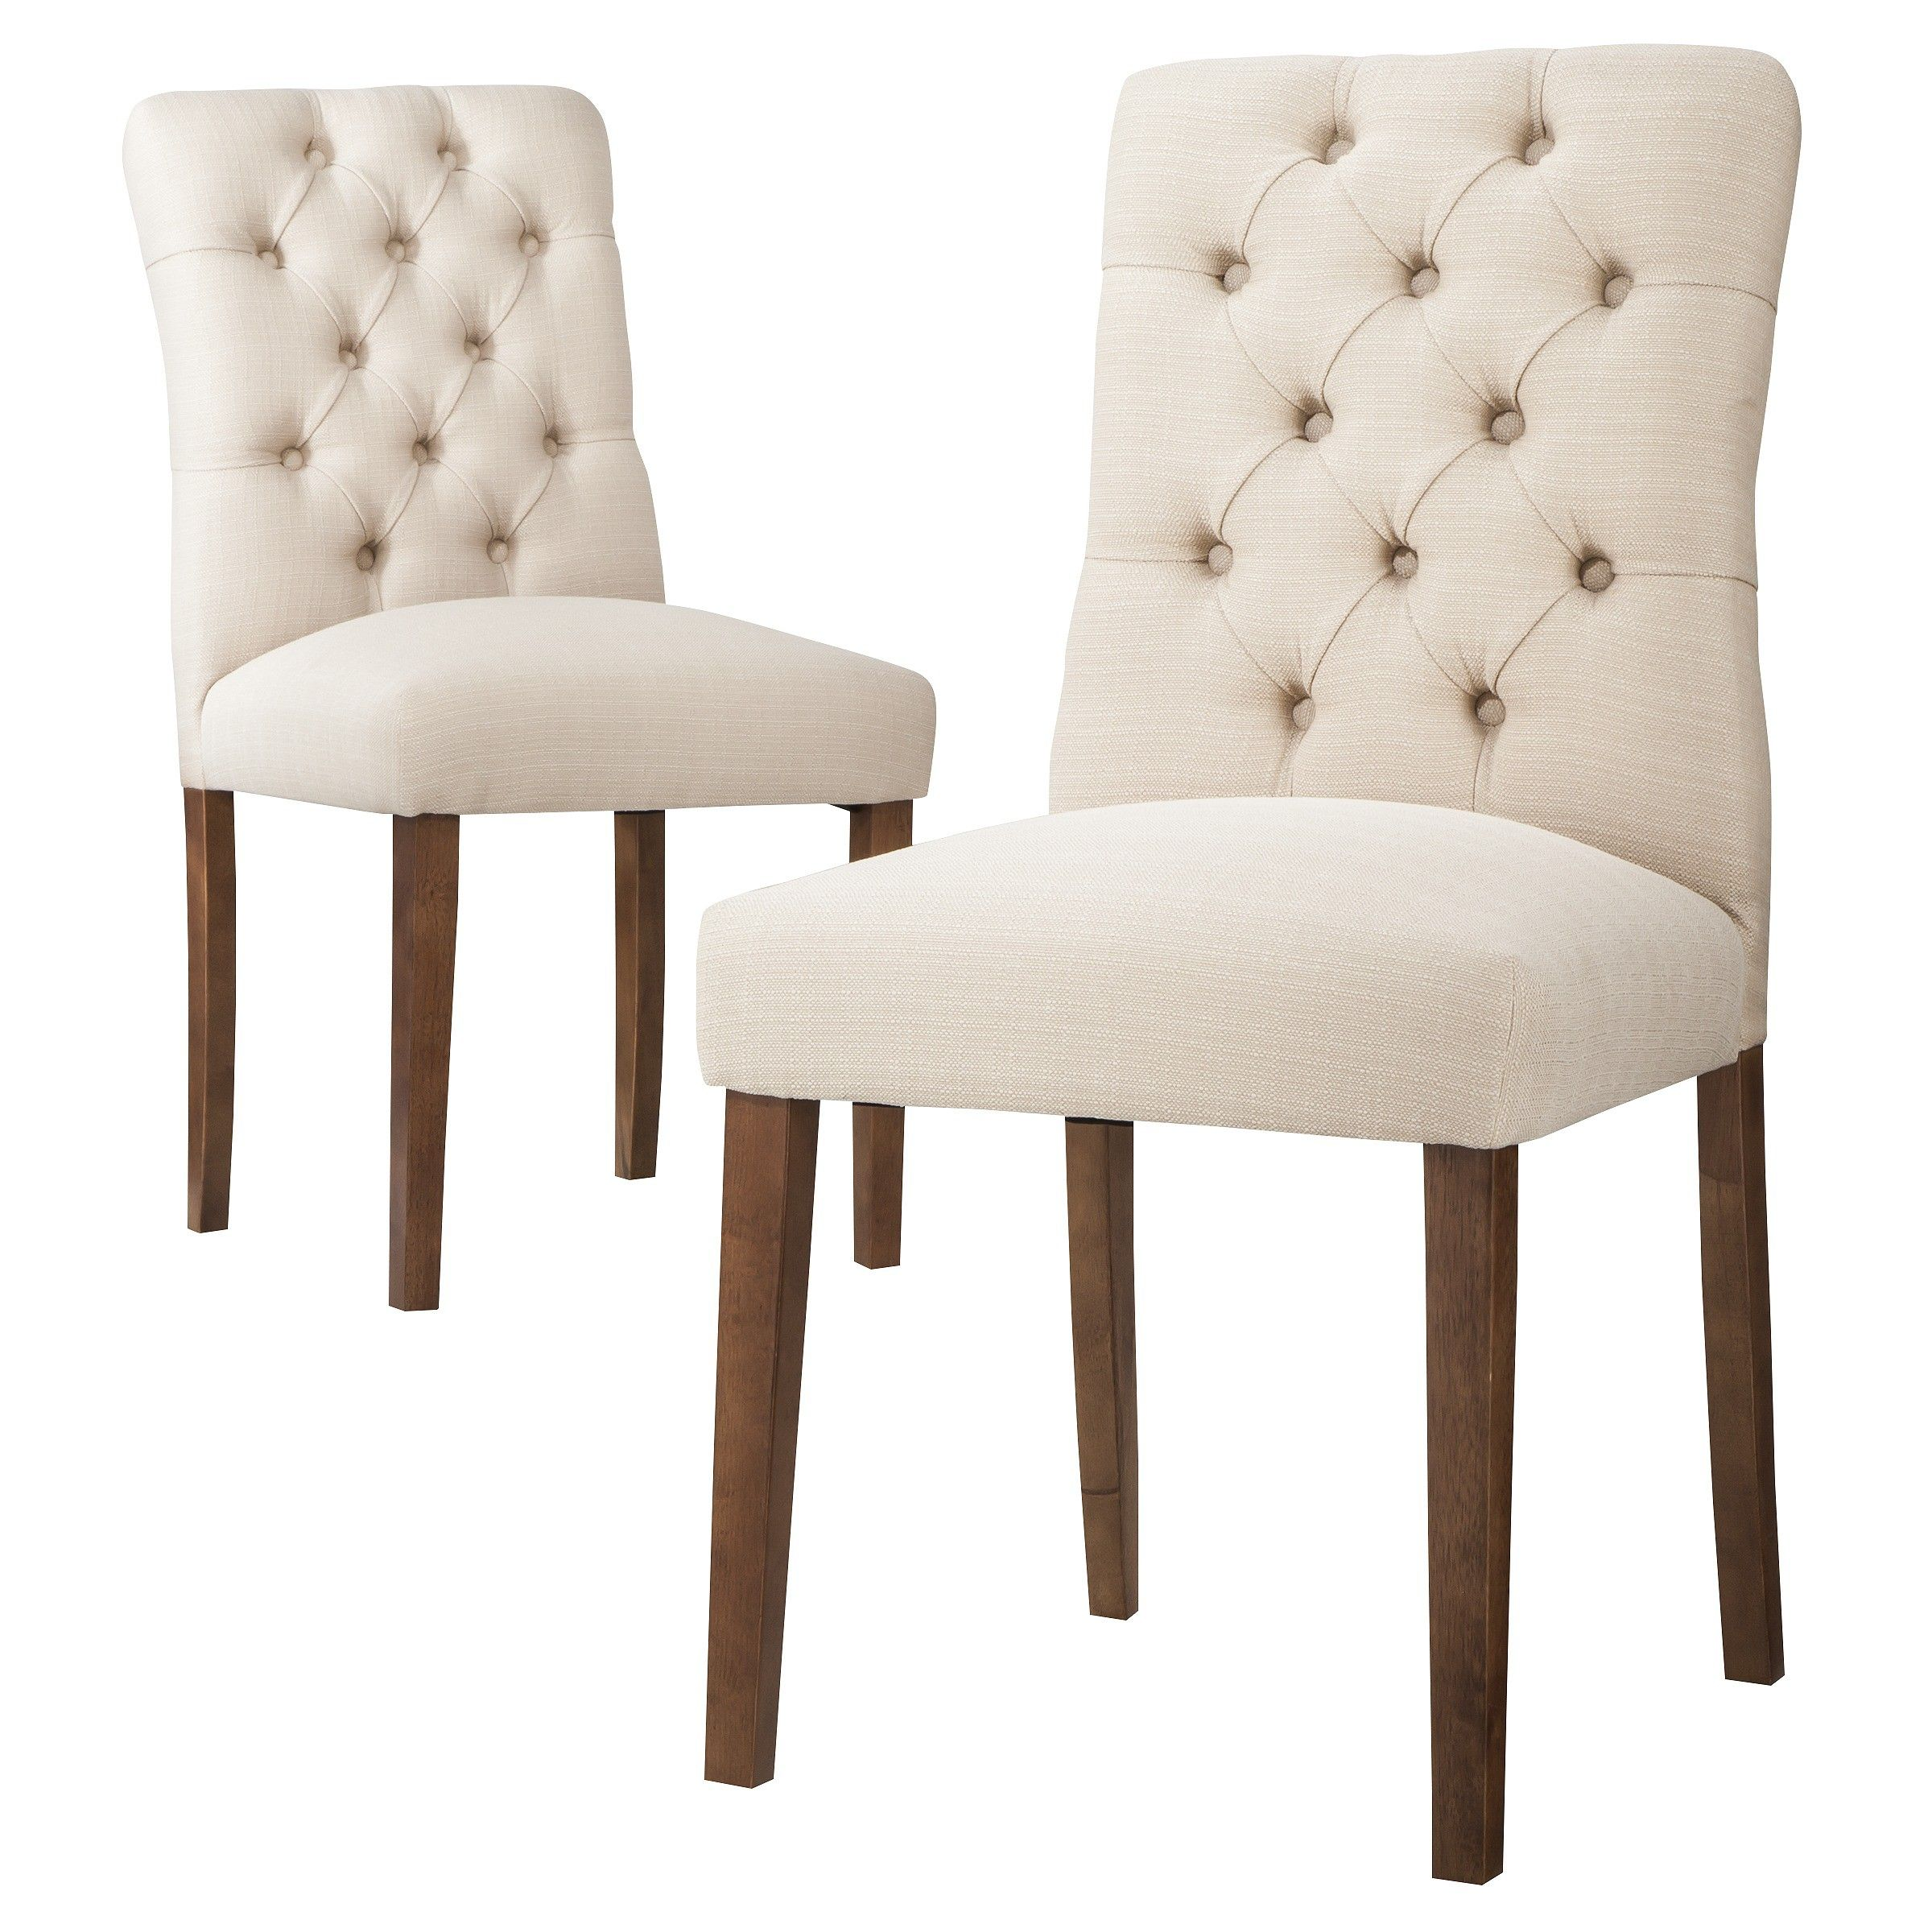 Payless Furniture Store Dining Room Tables: $120 Threshold™ Brookline Tufted Dining Chair